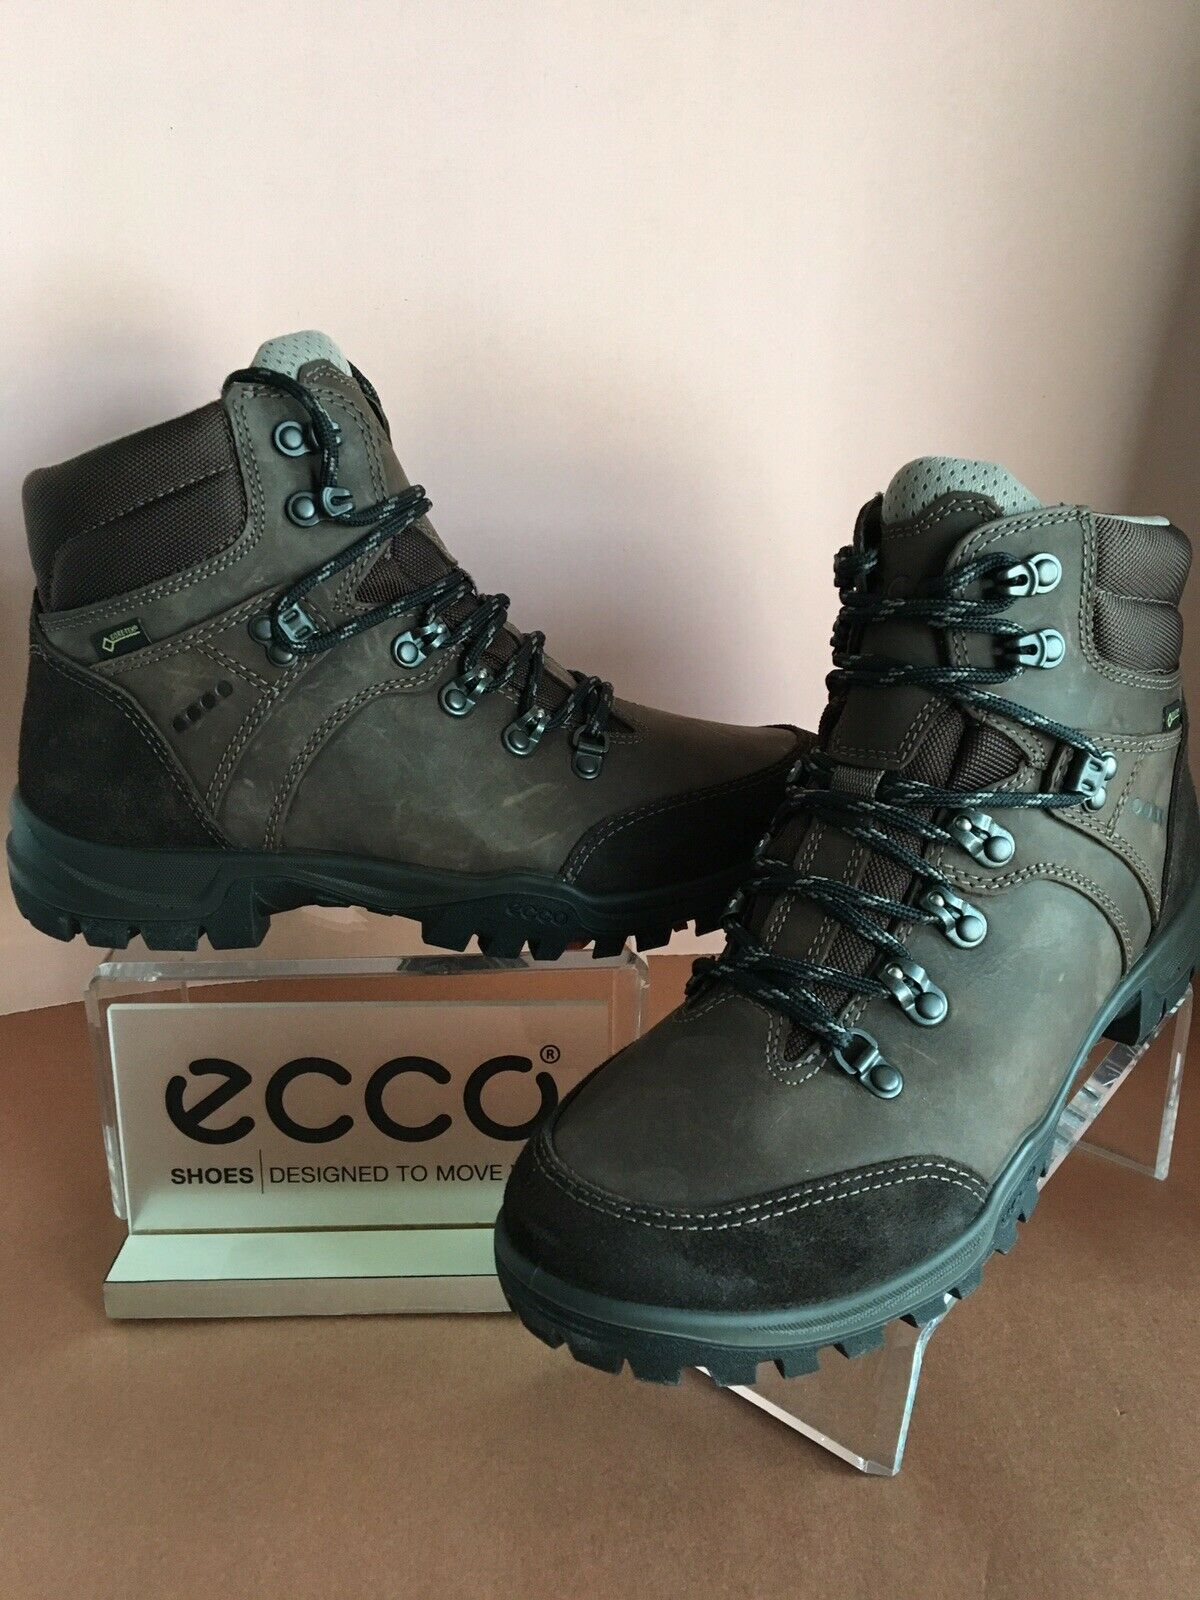 Ecco  Women's Xpedition III high cut GTX boot, 81183-02072 size 42, First Quality  high discount